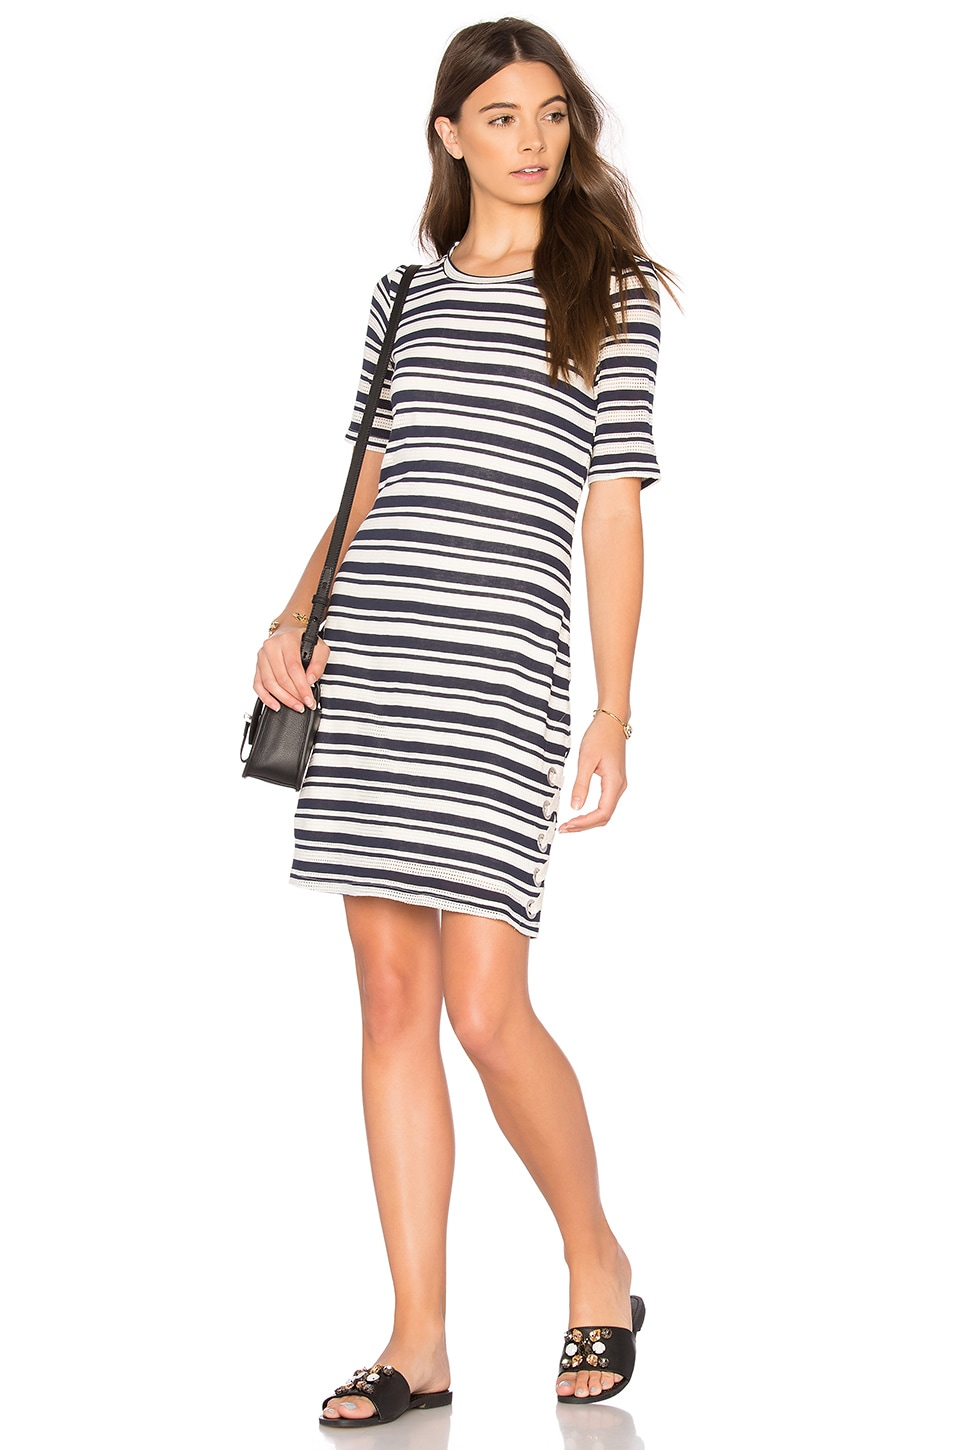 Splendid Topsail Stripe Shirt Dress in White & Navy